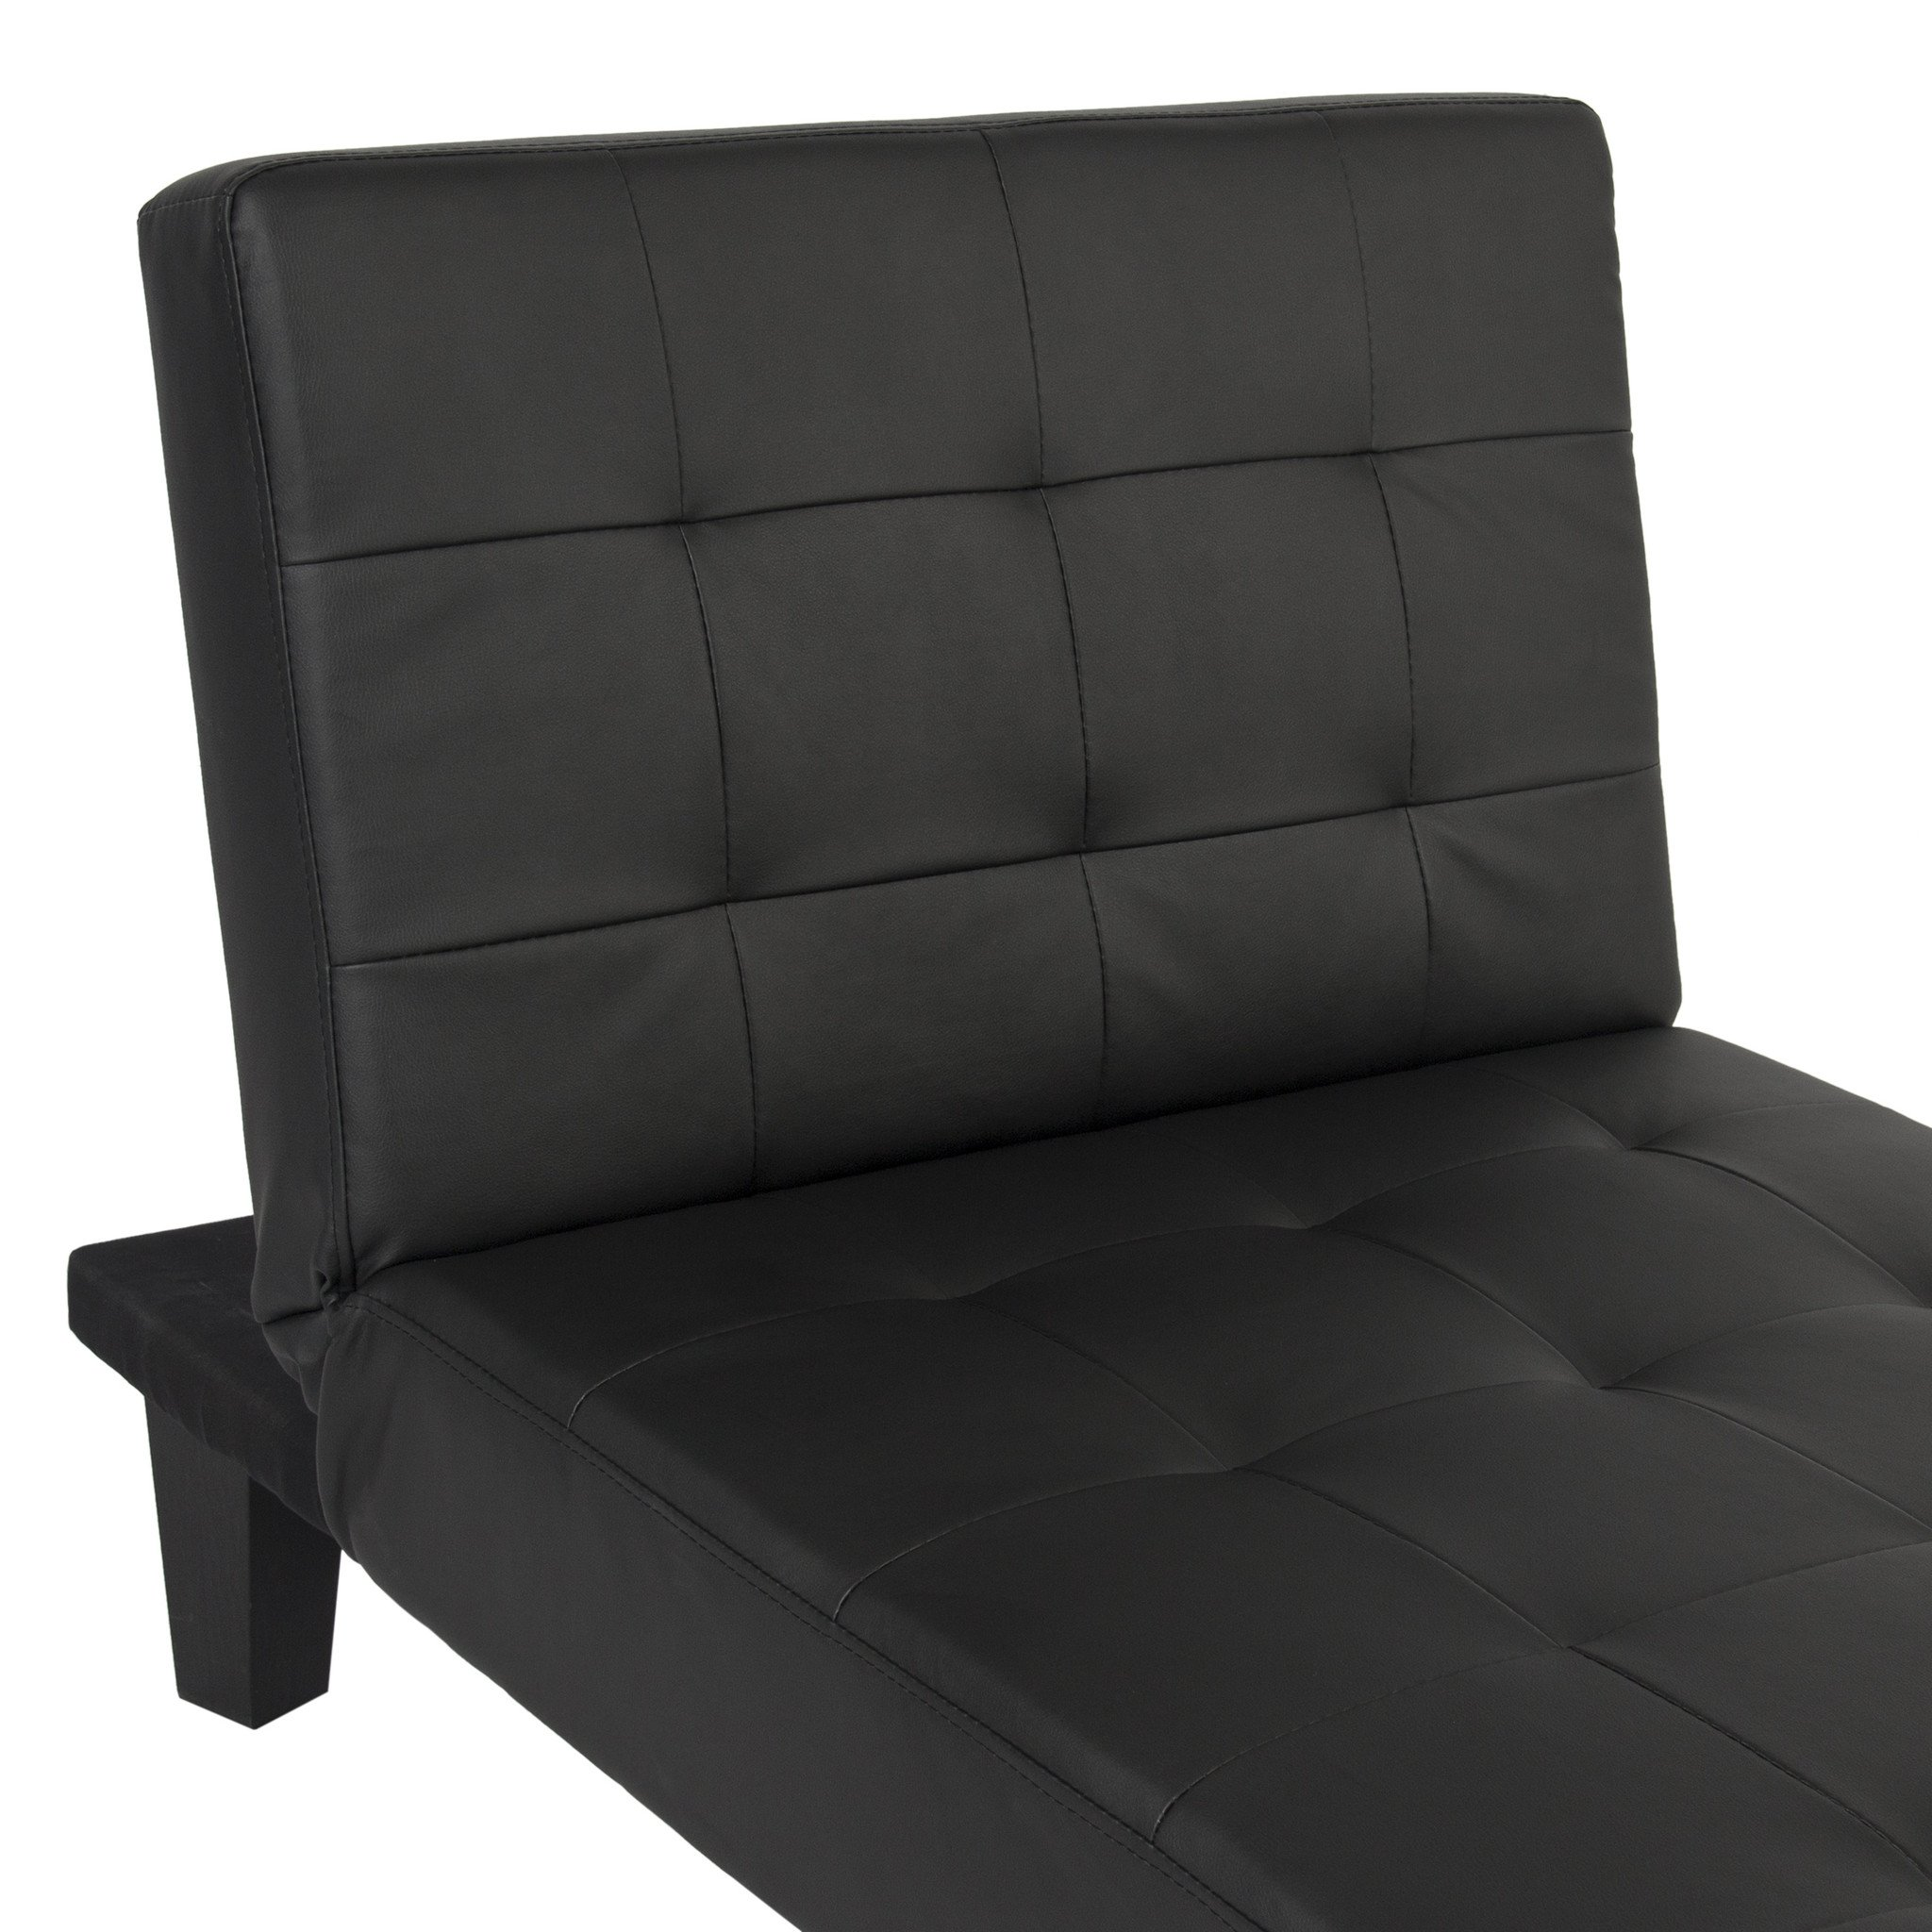 Exquisite Dorm Chairs with Best Modern Design and color can be place at Living room or Bedroom Ideas